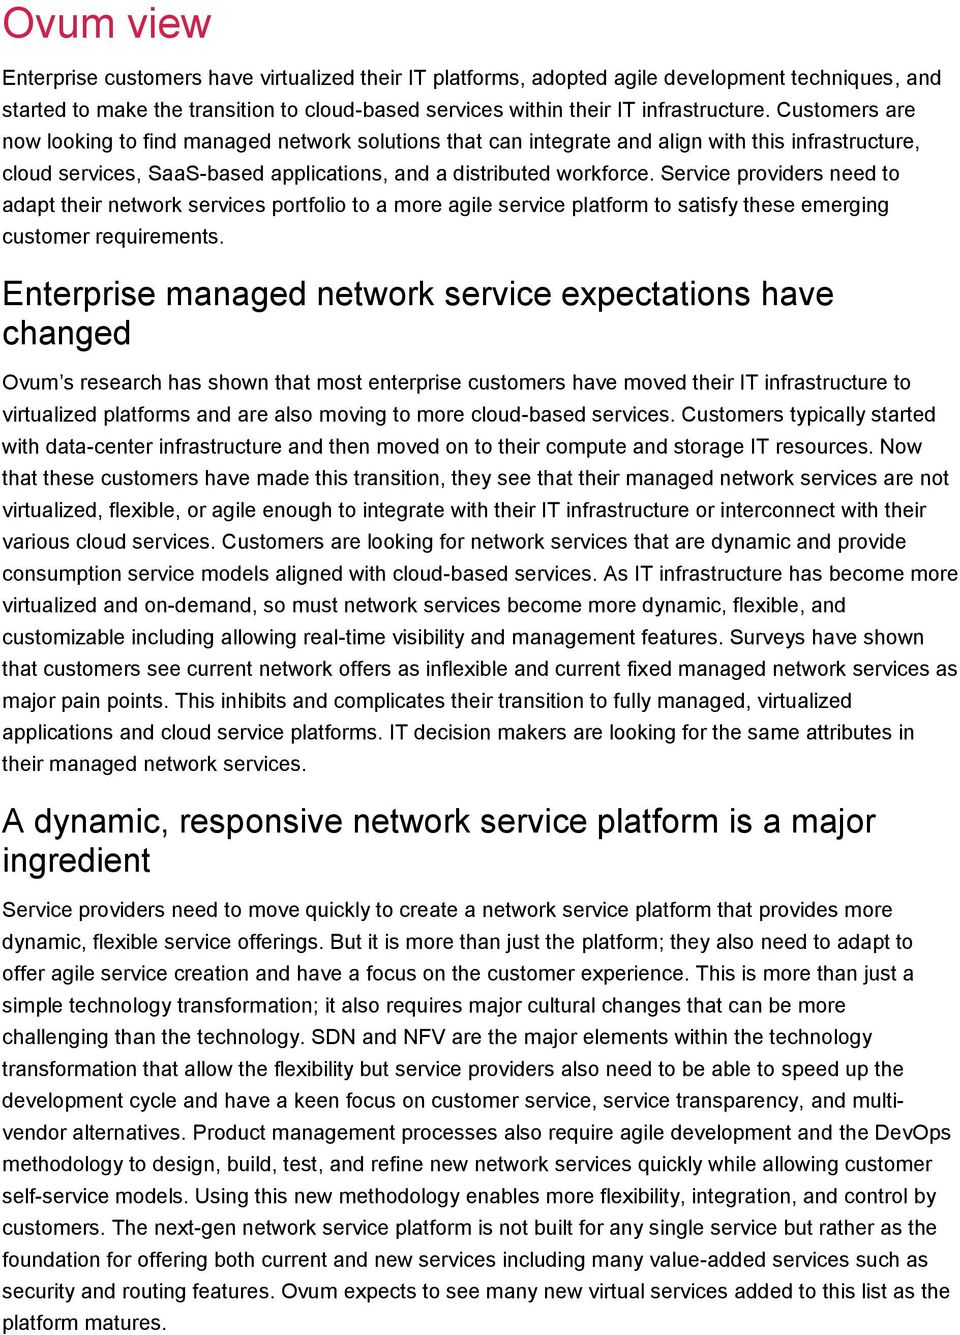 Service providers need to adapt their network services portfolio to a more agile service platform to satisfy these emerging customer requirements.